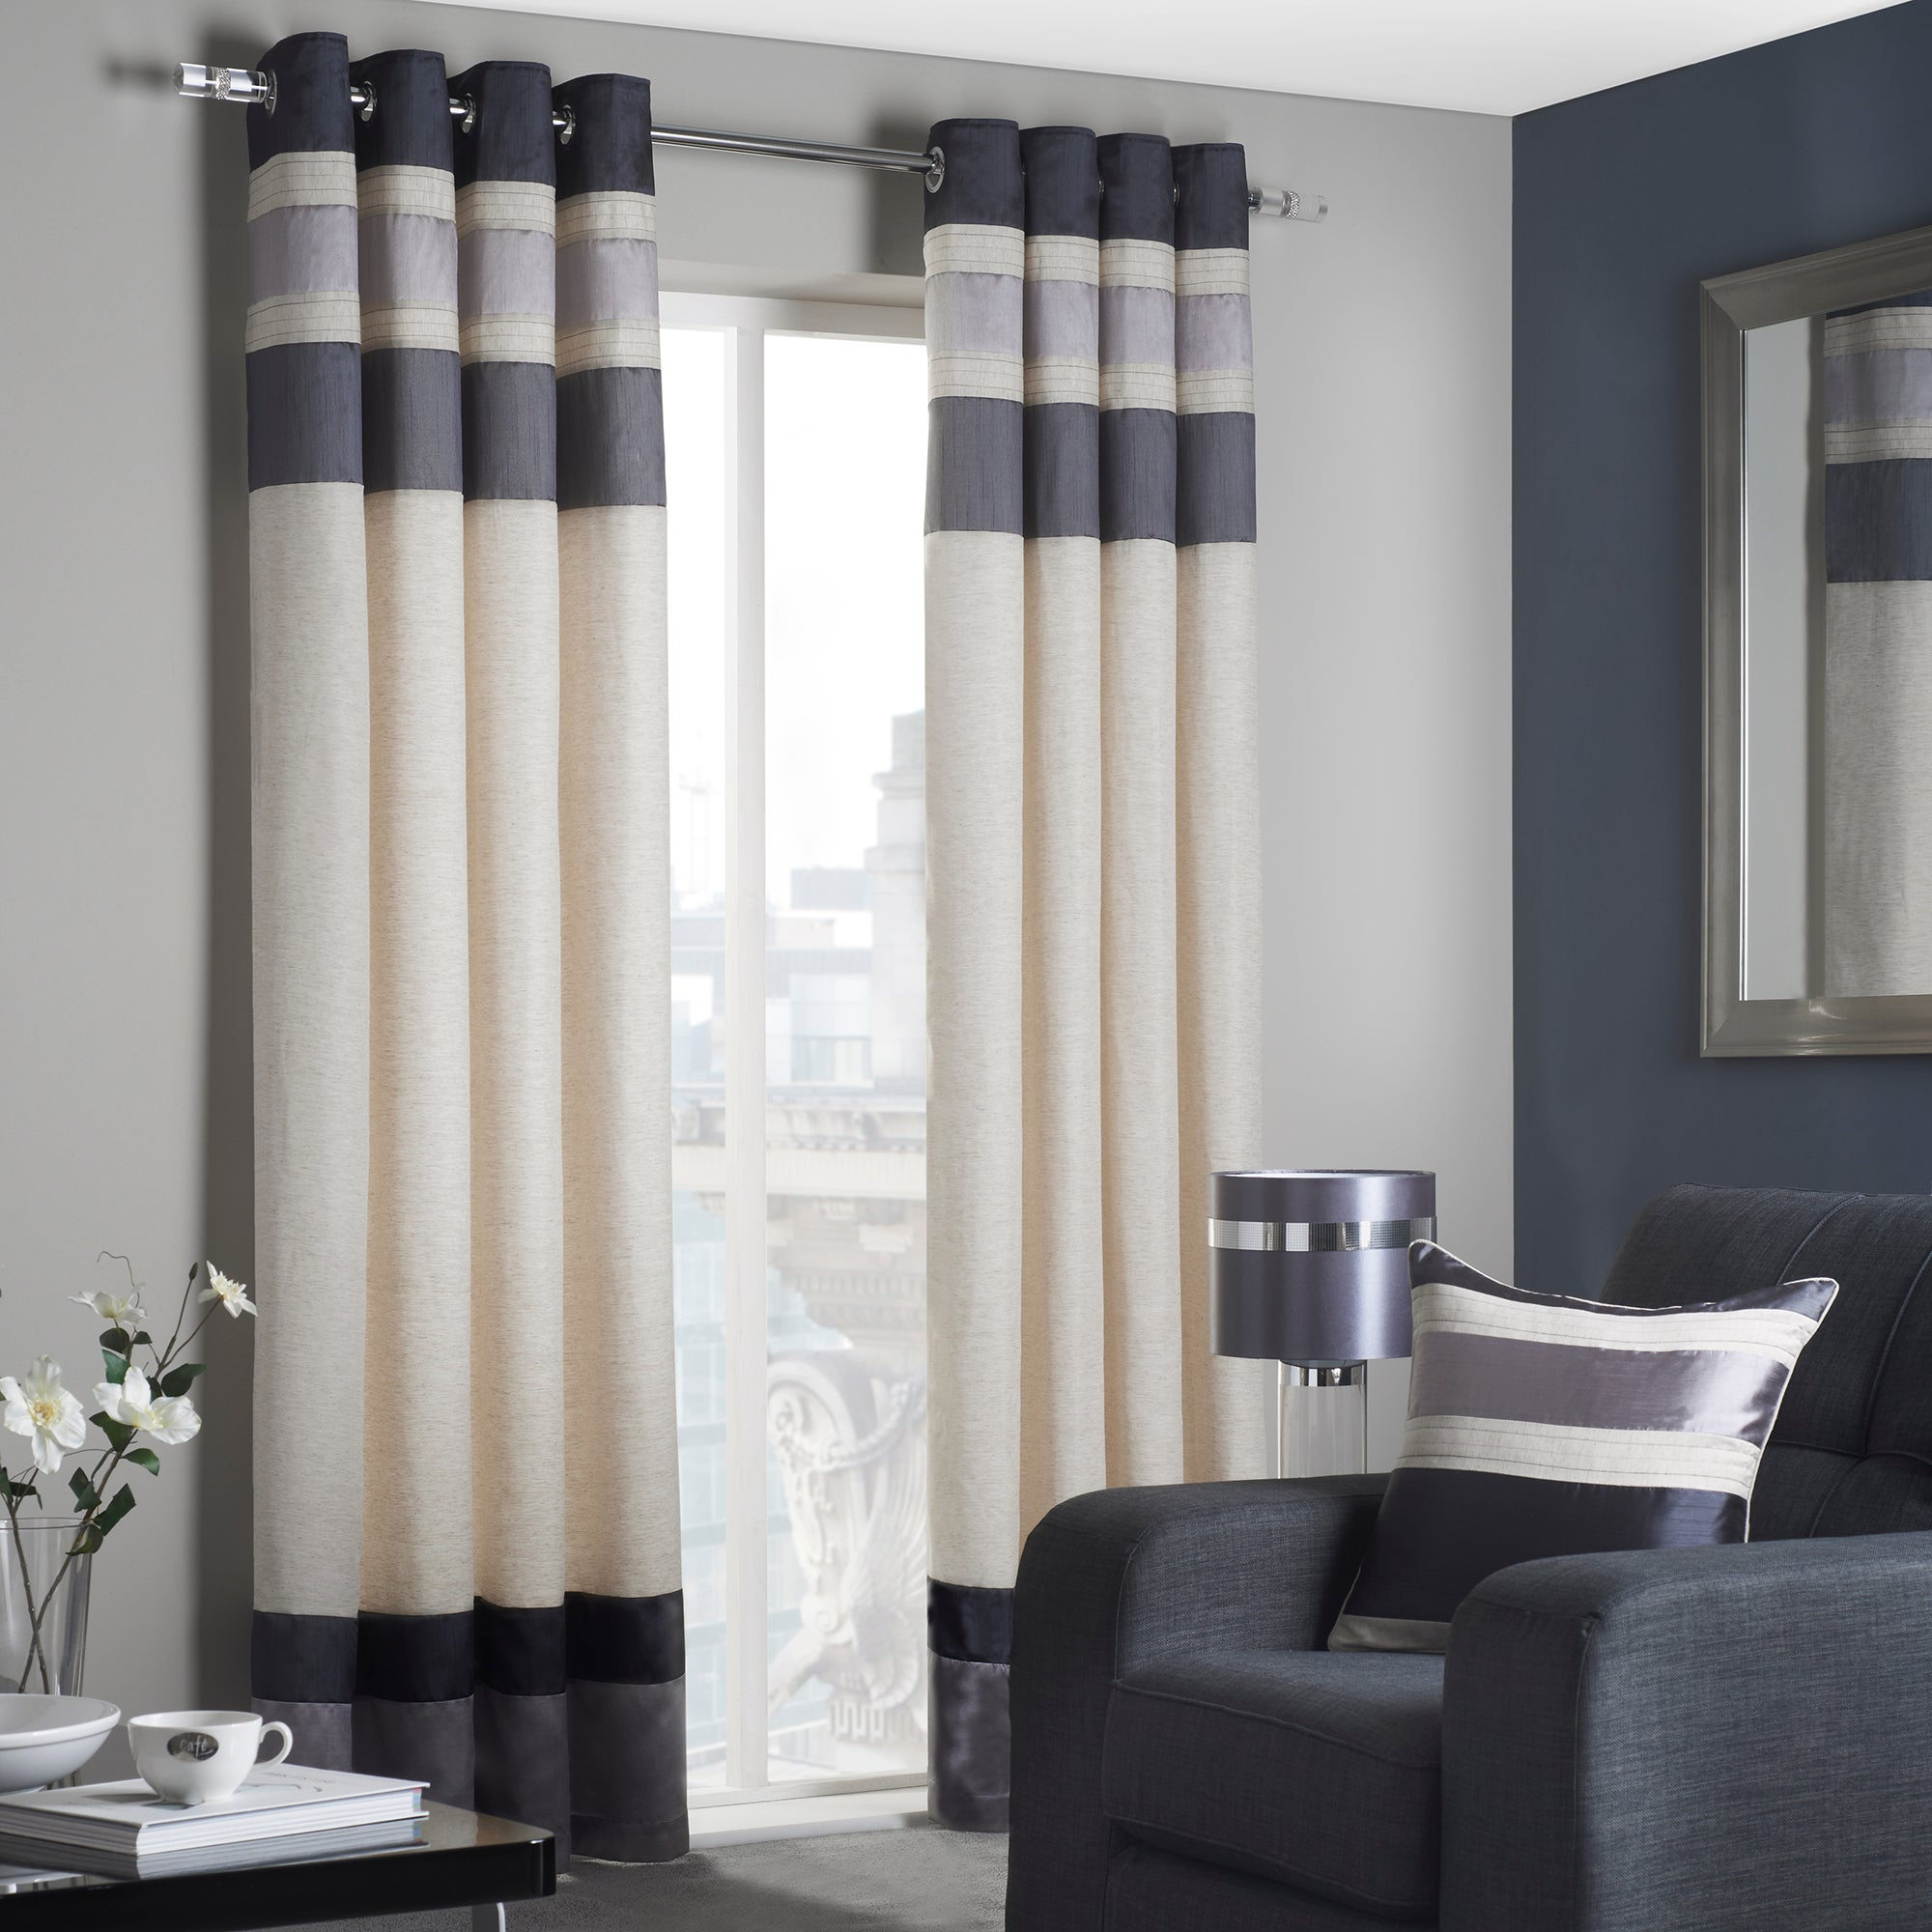 Charcoal Alban Lined Eyelet Curtains